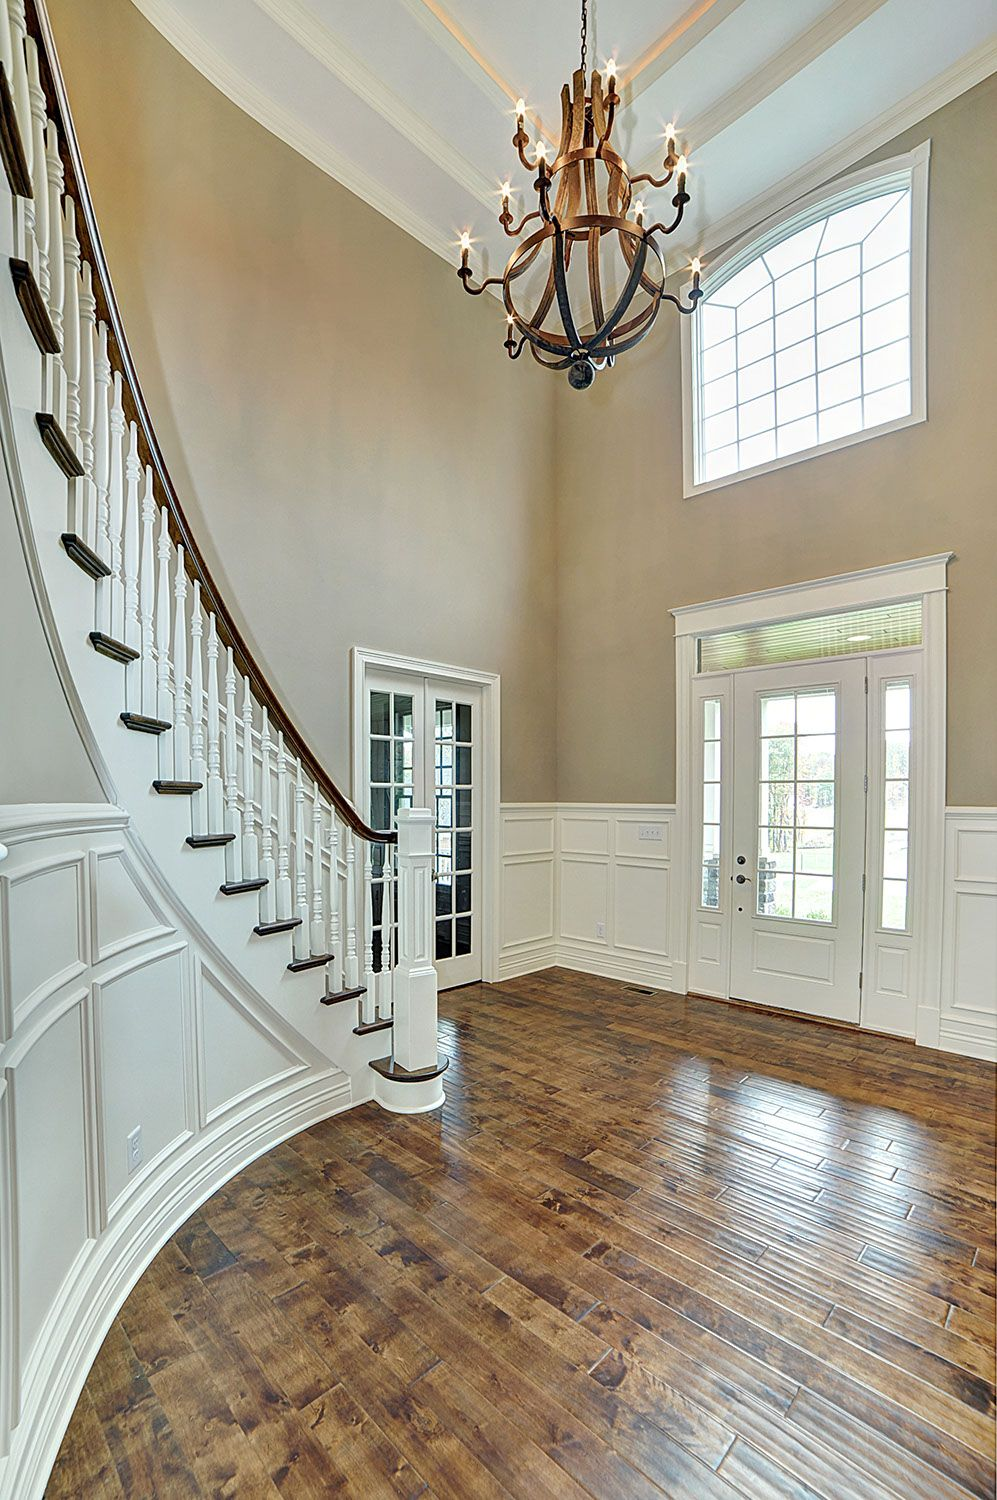 Foyer Staircase : Curved staircase in two story foyer with white wainscoting